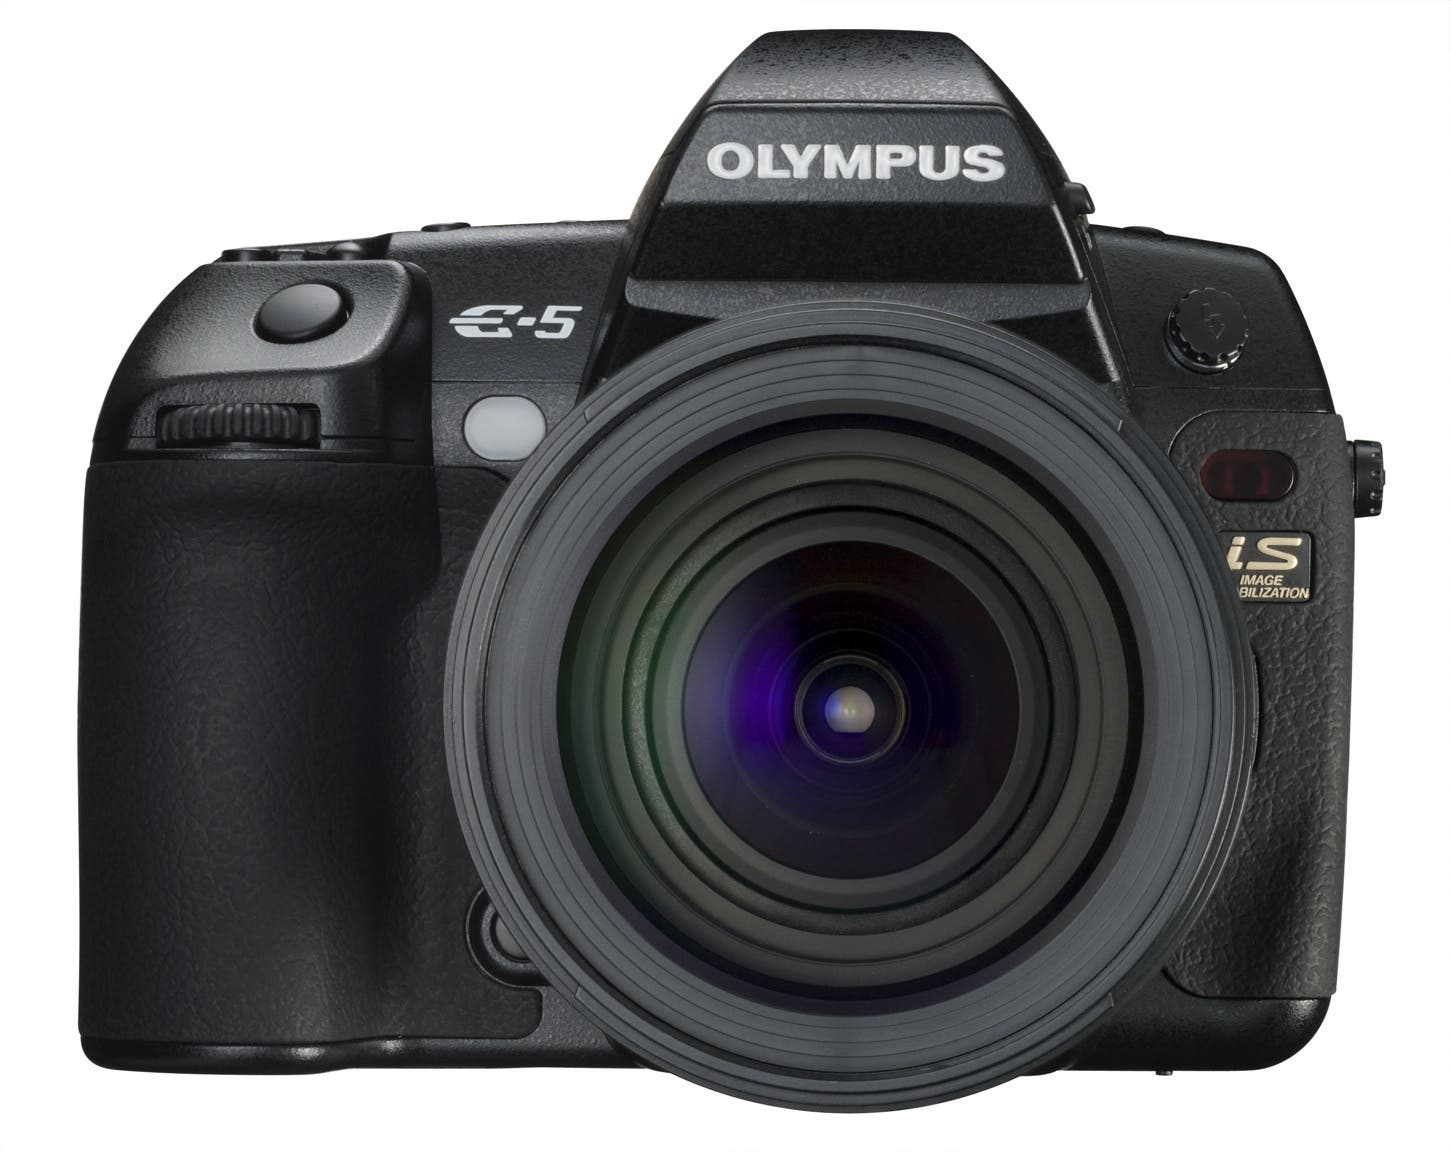 Olympus Announces New Flagship E-5 DSLR